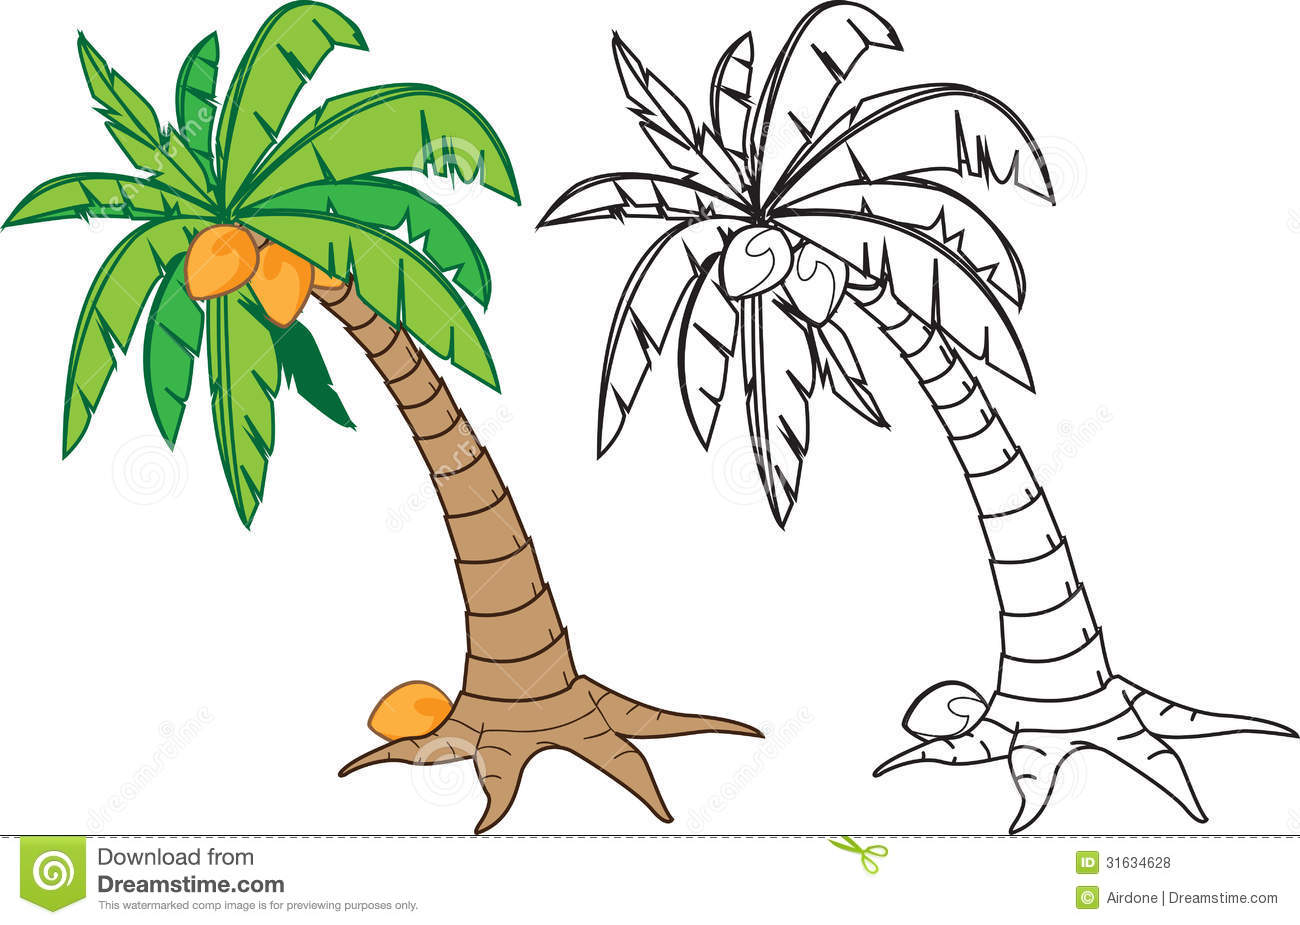 Coconut tree stock vector. Illustration of warm, drawing ...